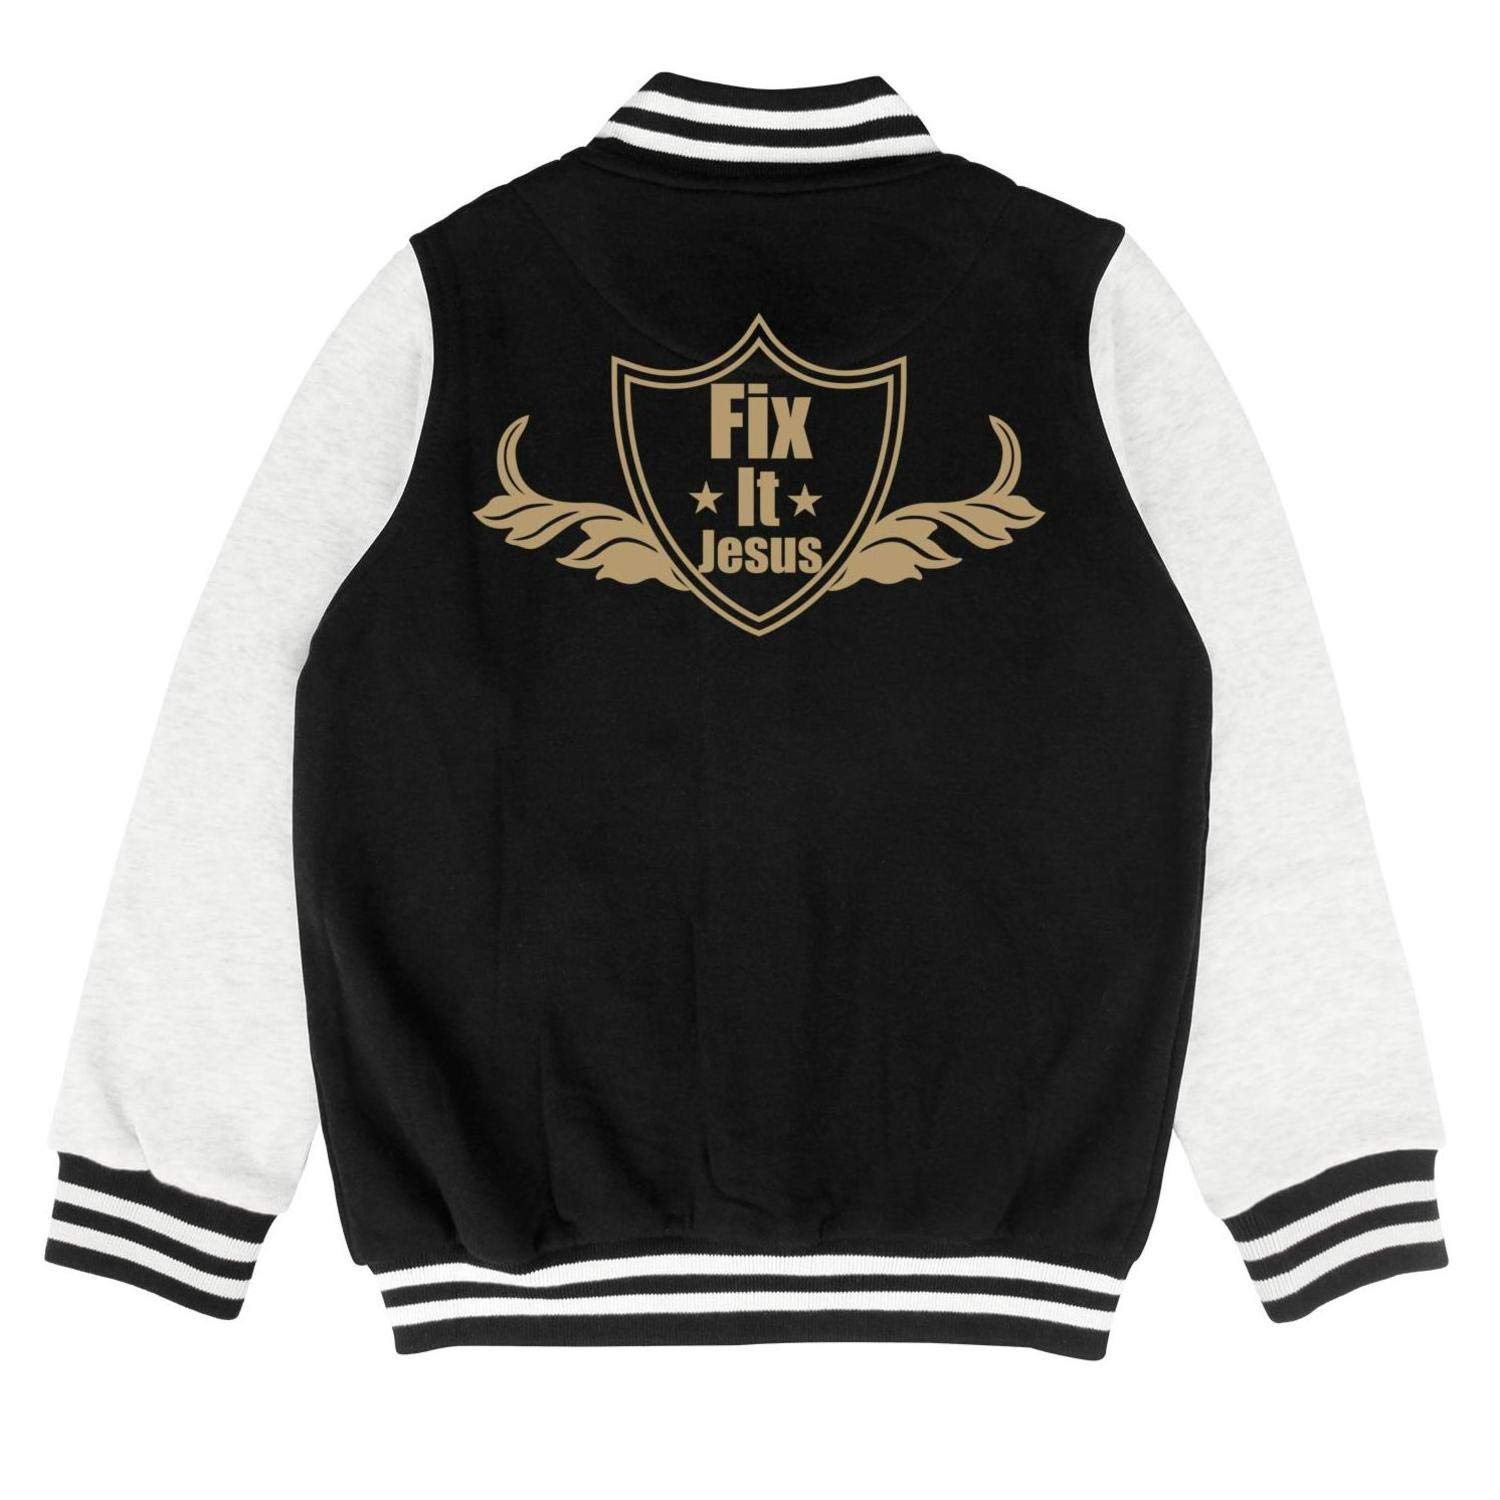 epoyseretrtgty Autumn Boys Girls Short Fix It Jesus Personality Baseball Jacket Sweater Coat